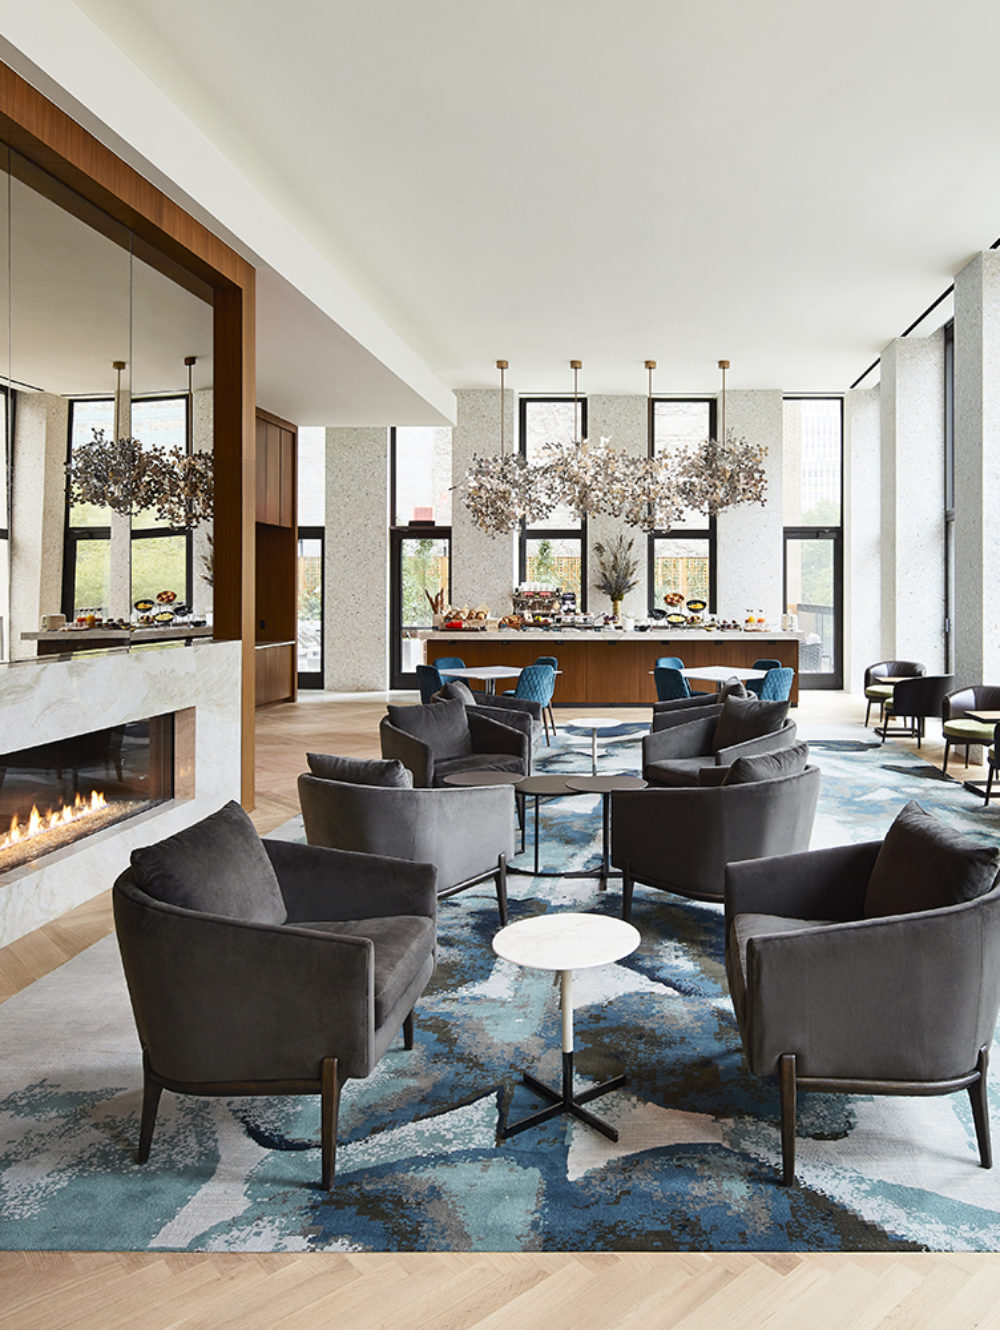 Living room lounge at The Bryant condominiums in New York. Large room with multiple tables, a bar and a built-in fireplace.